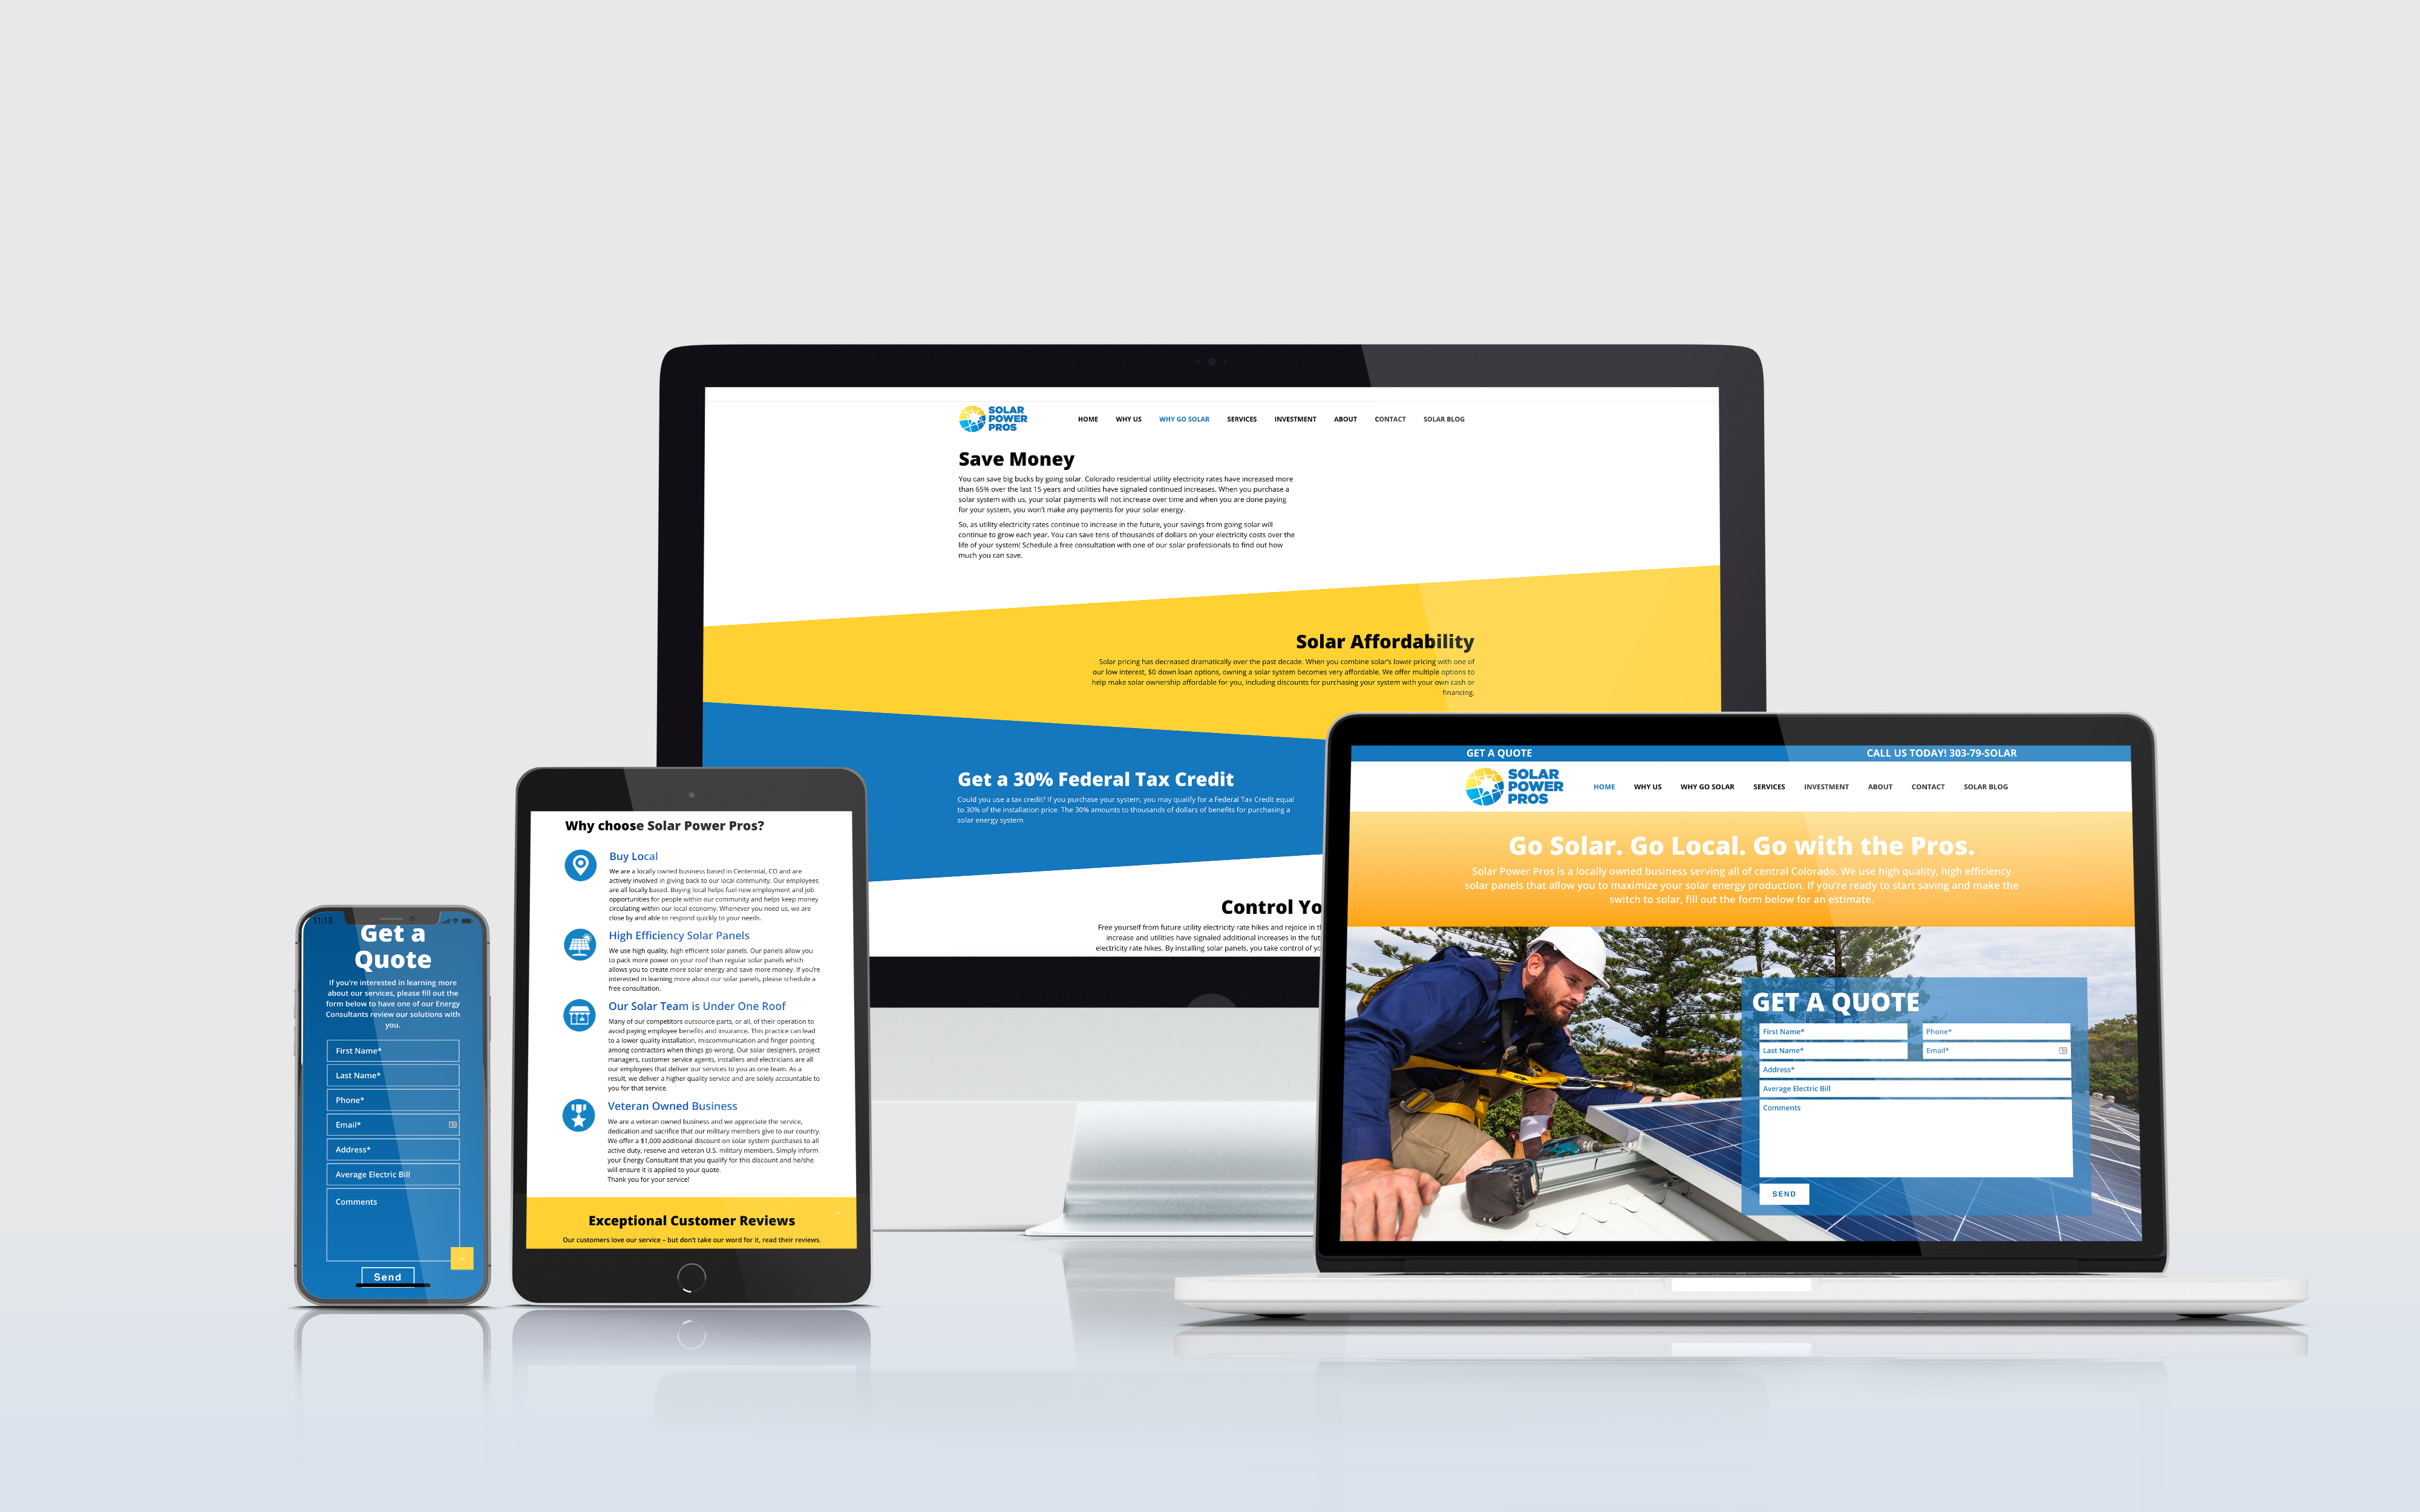 Solar Power Pros website displayed on multiple devices